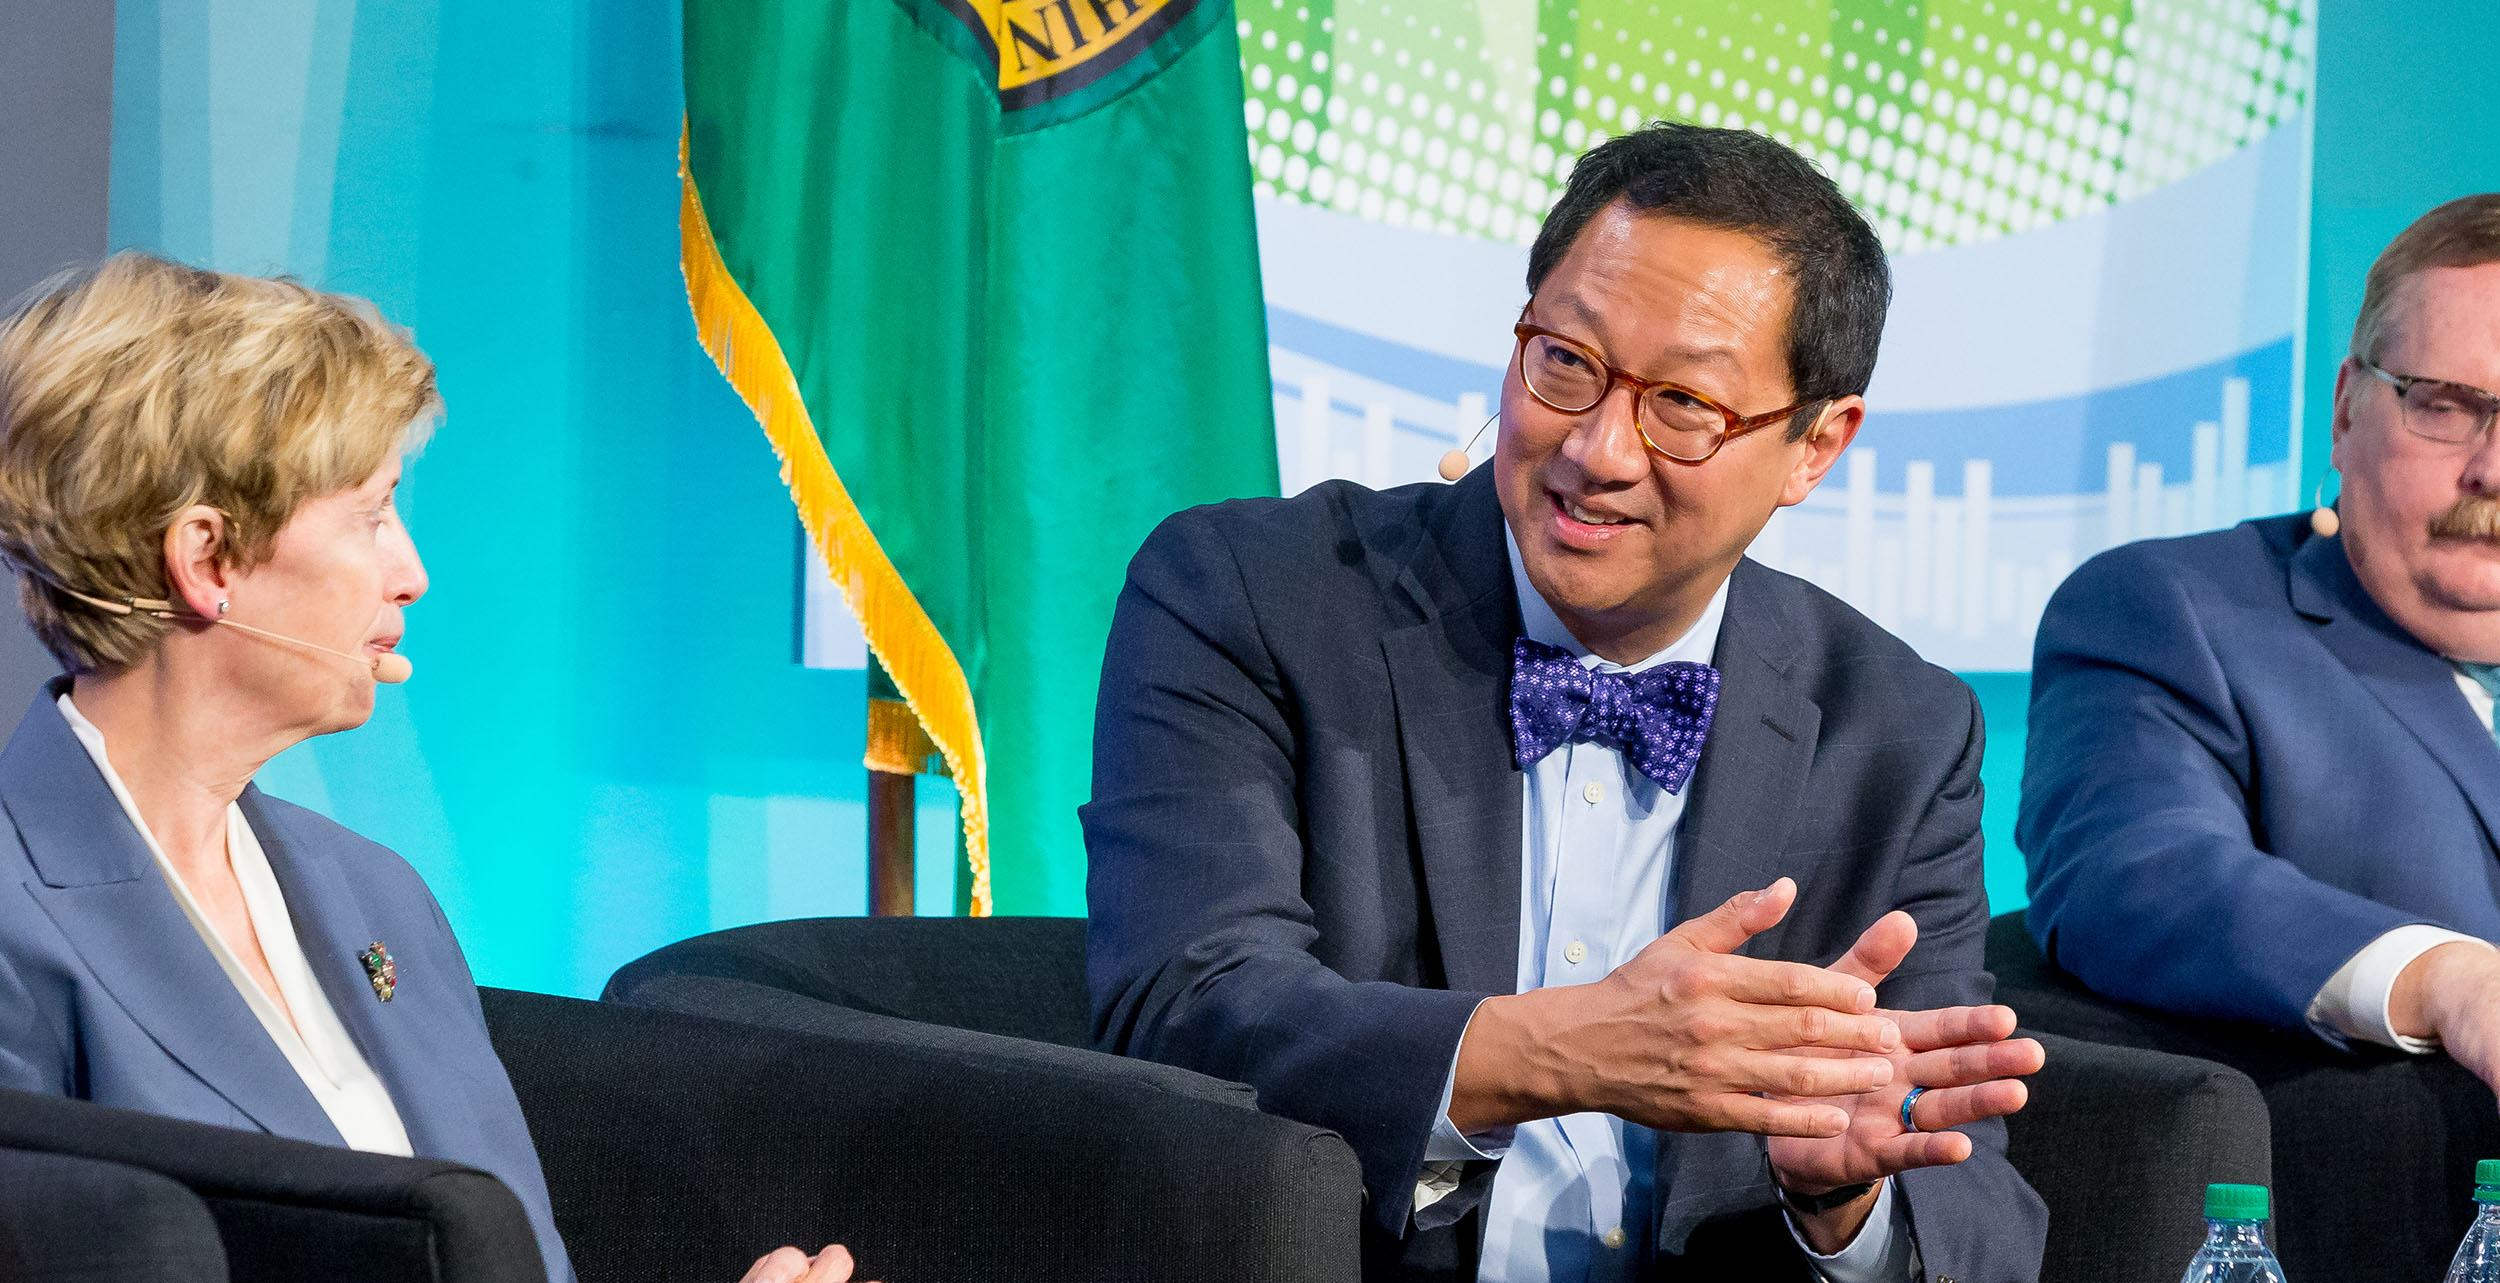 Santa Ono, President, University of British Columbia participates in a panel on Research and Higher Education – Helping Innovation Flourish, at the 2017 Cascadia Innovation Corridor Conference (We Worldwide)